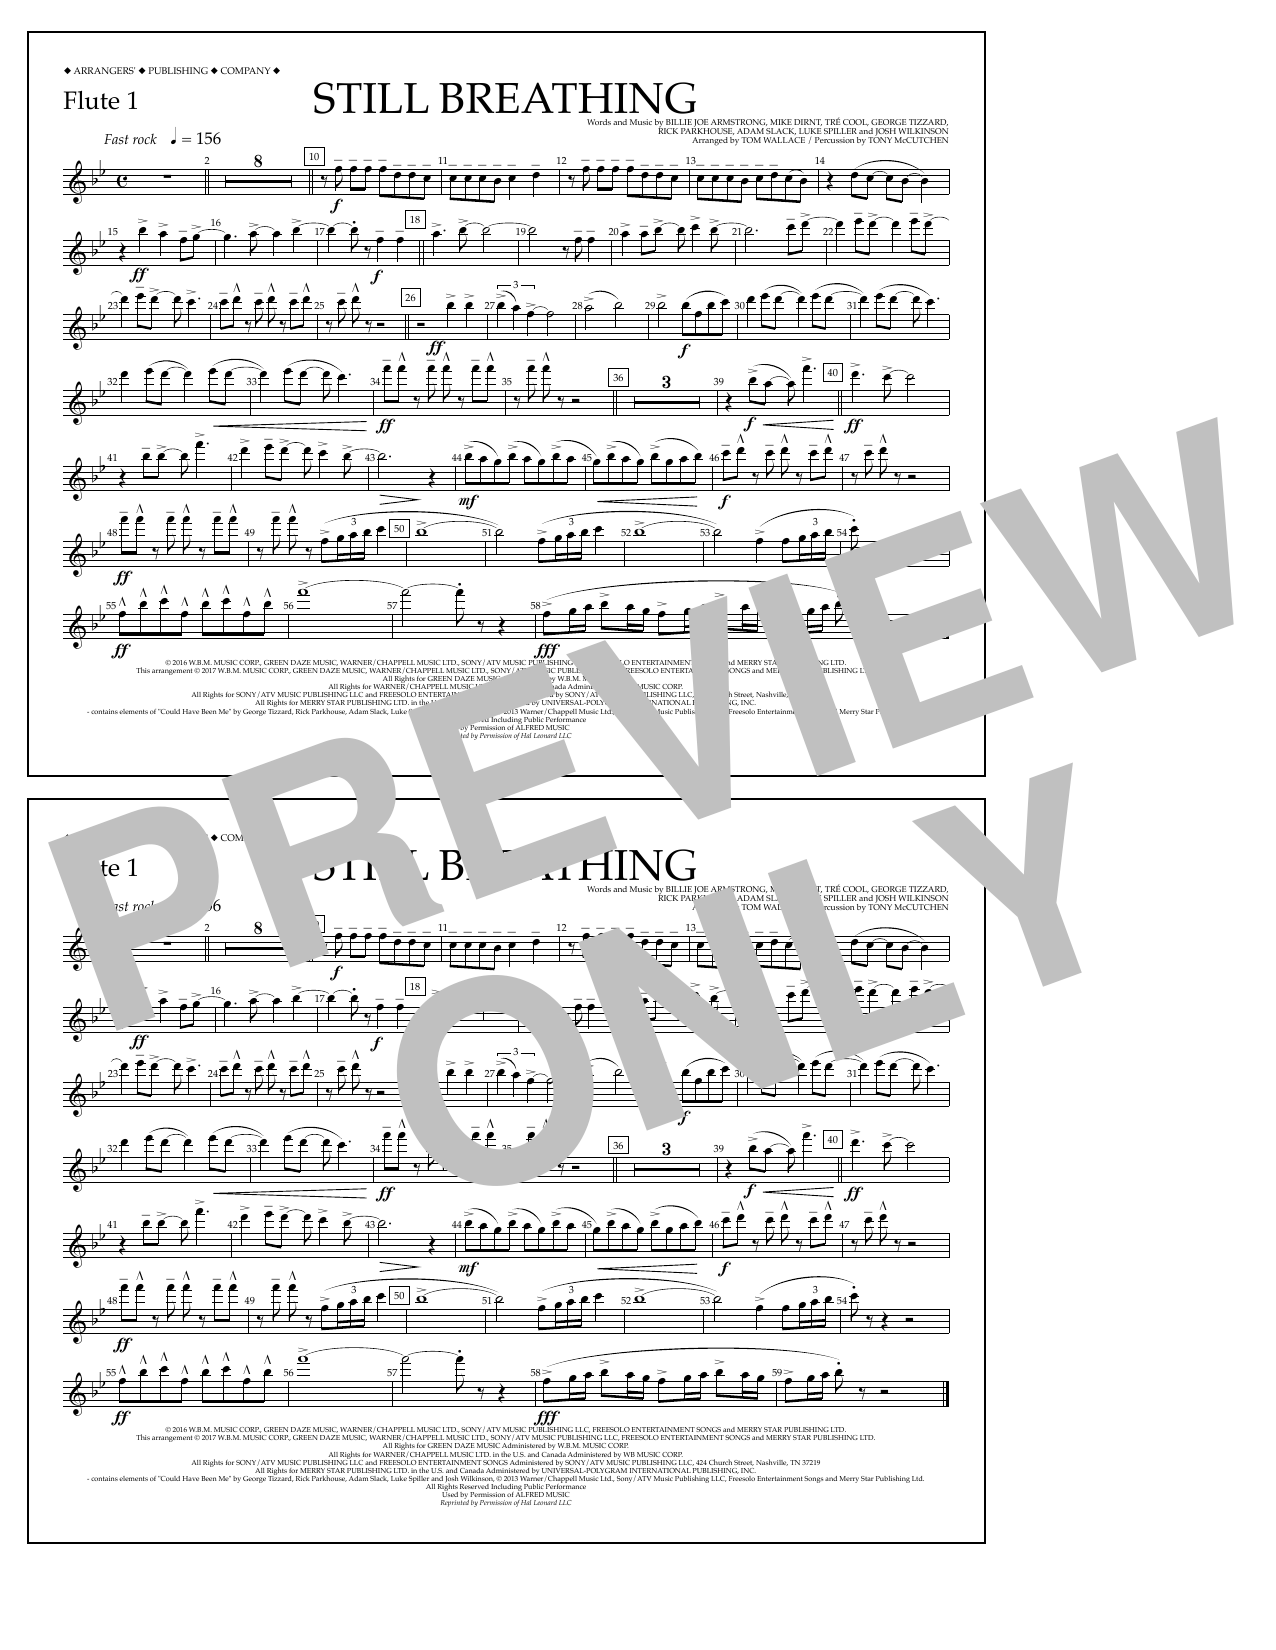 Still Breathing - Flute 1 Sheet Music